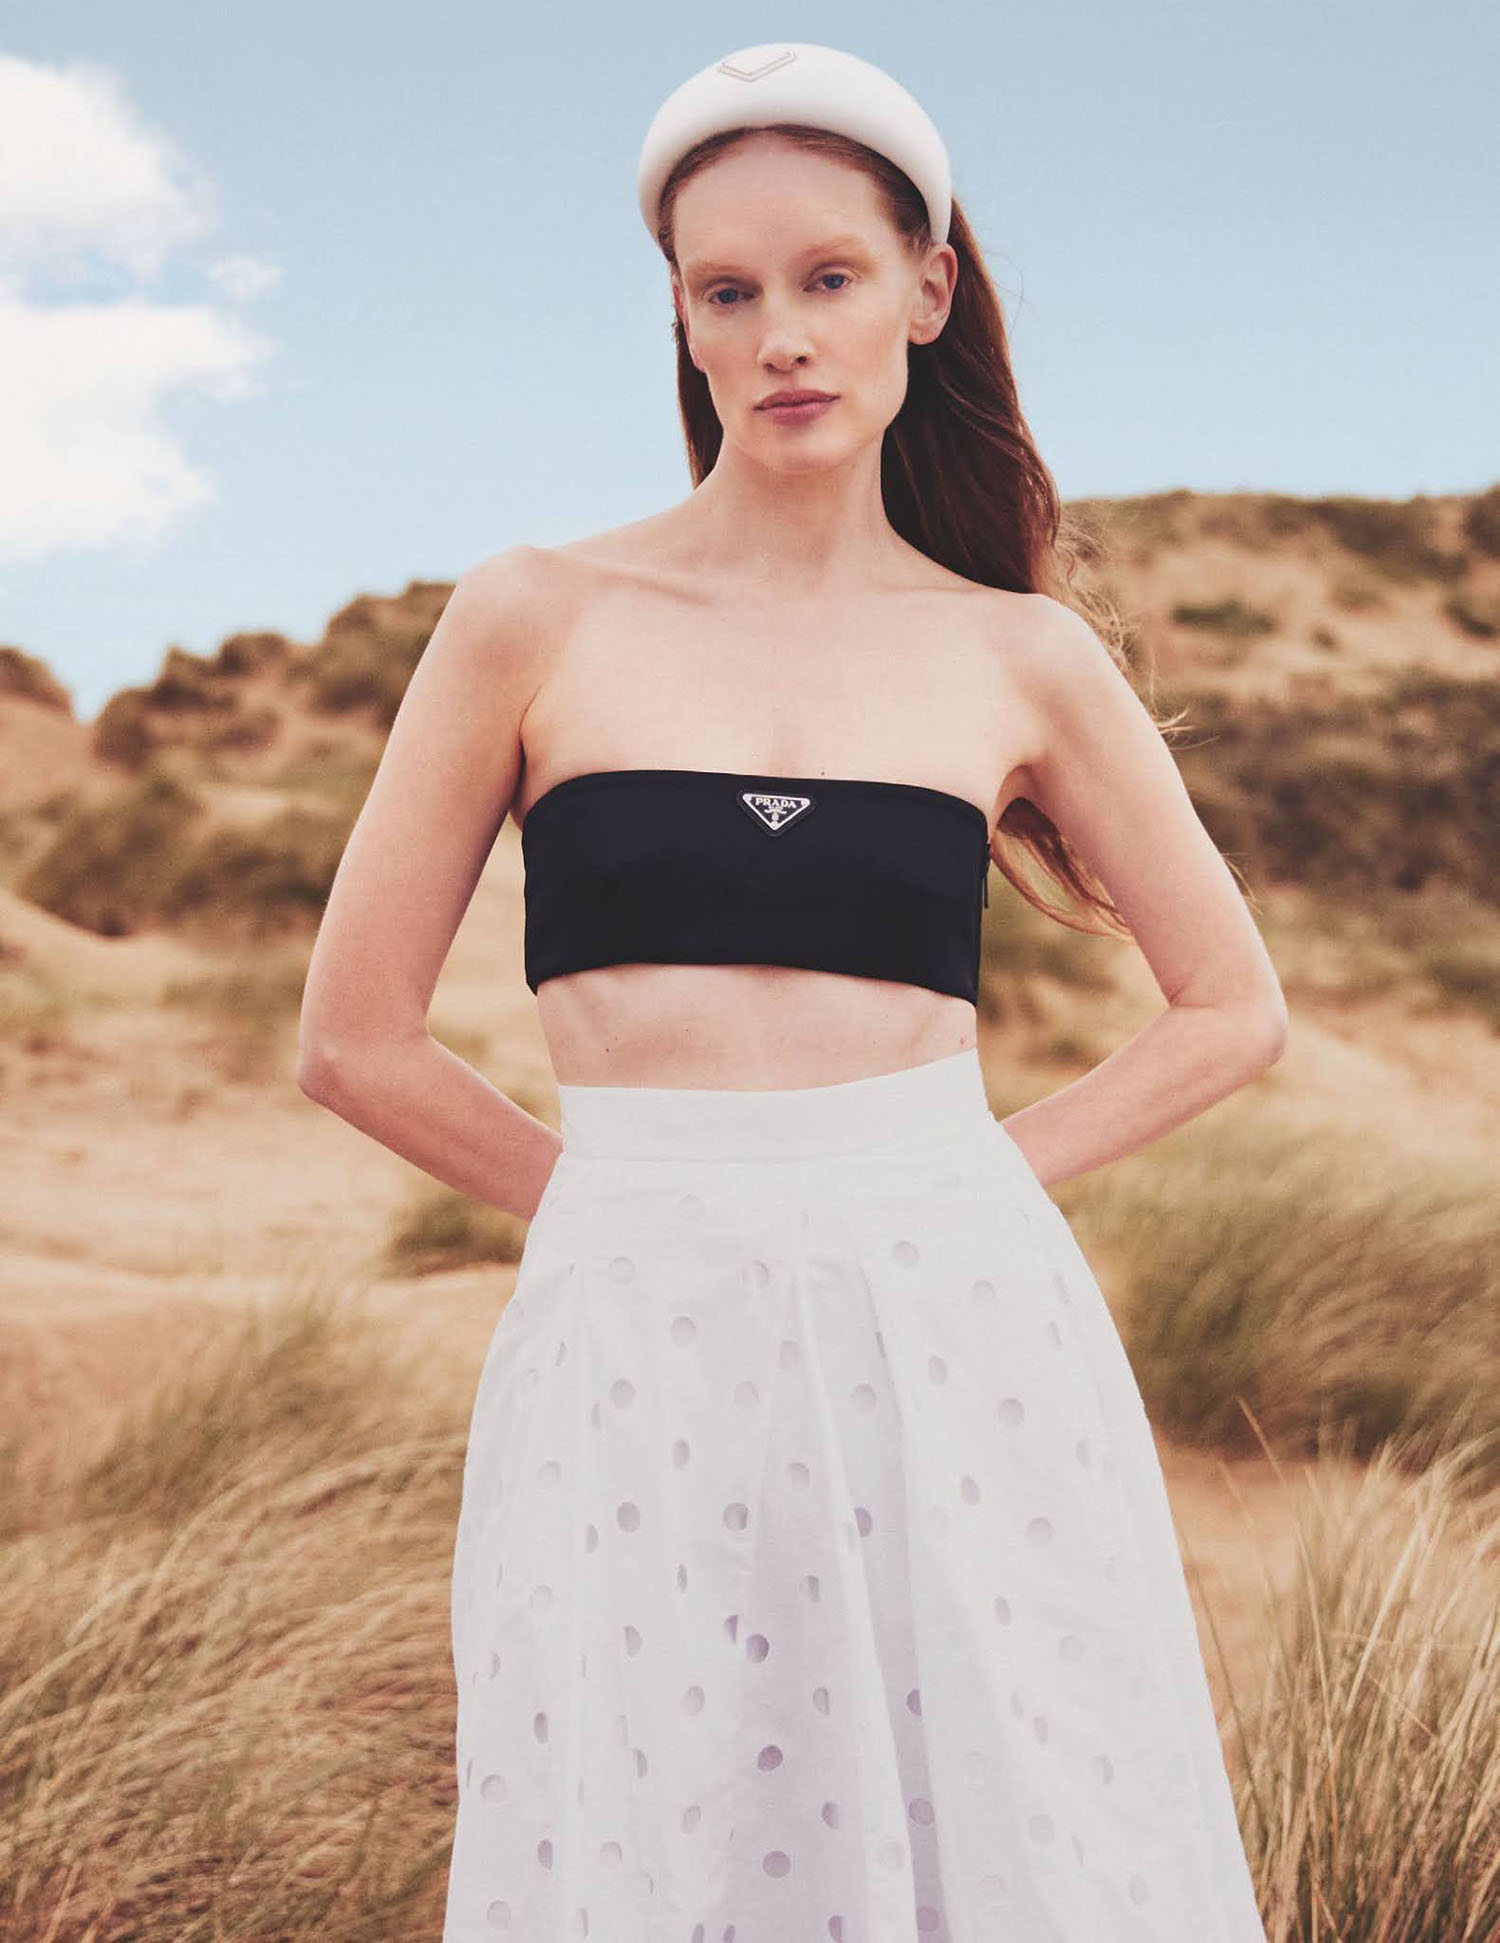 Bianca O'Brien by Thomas Cooksey for Tatler UK August 2021